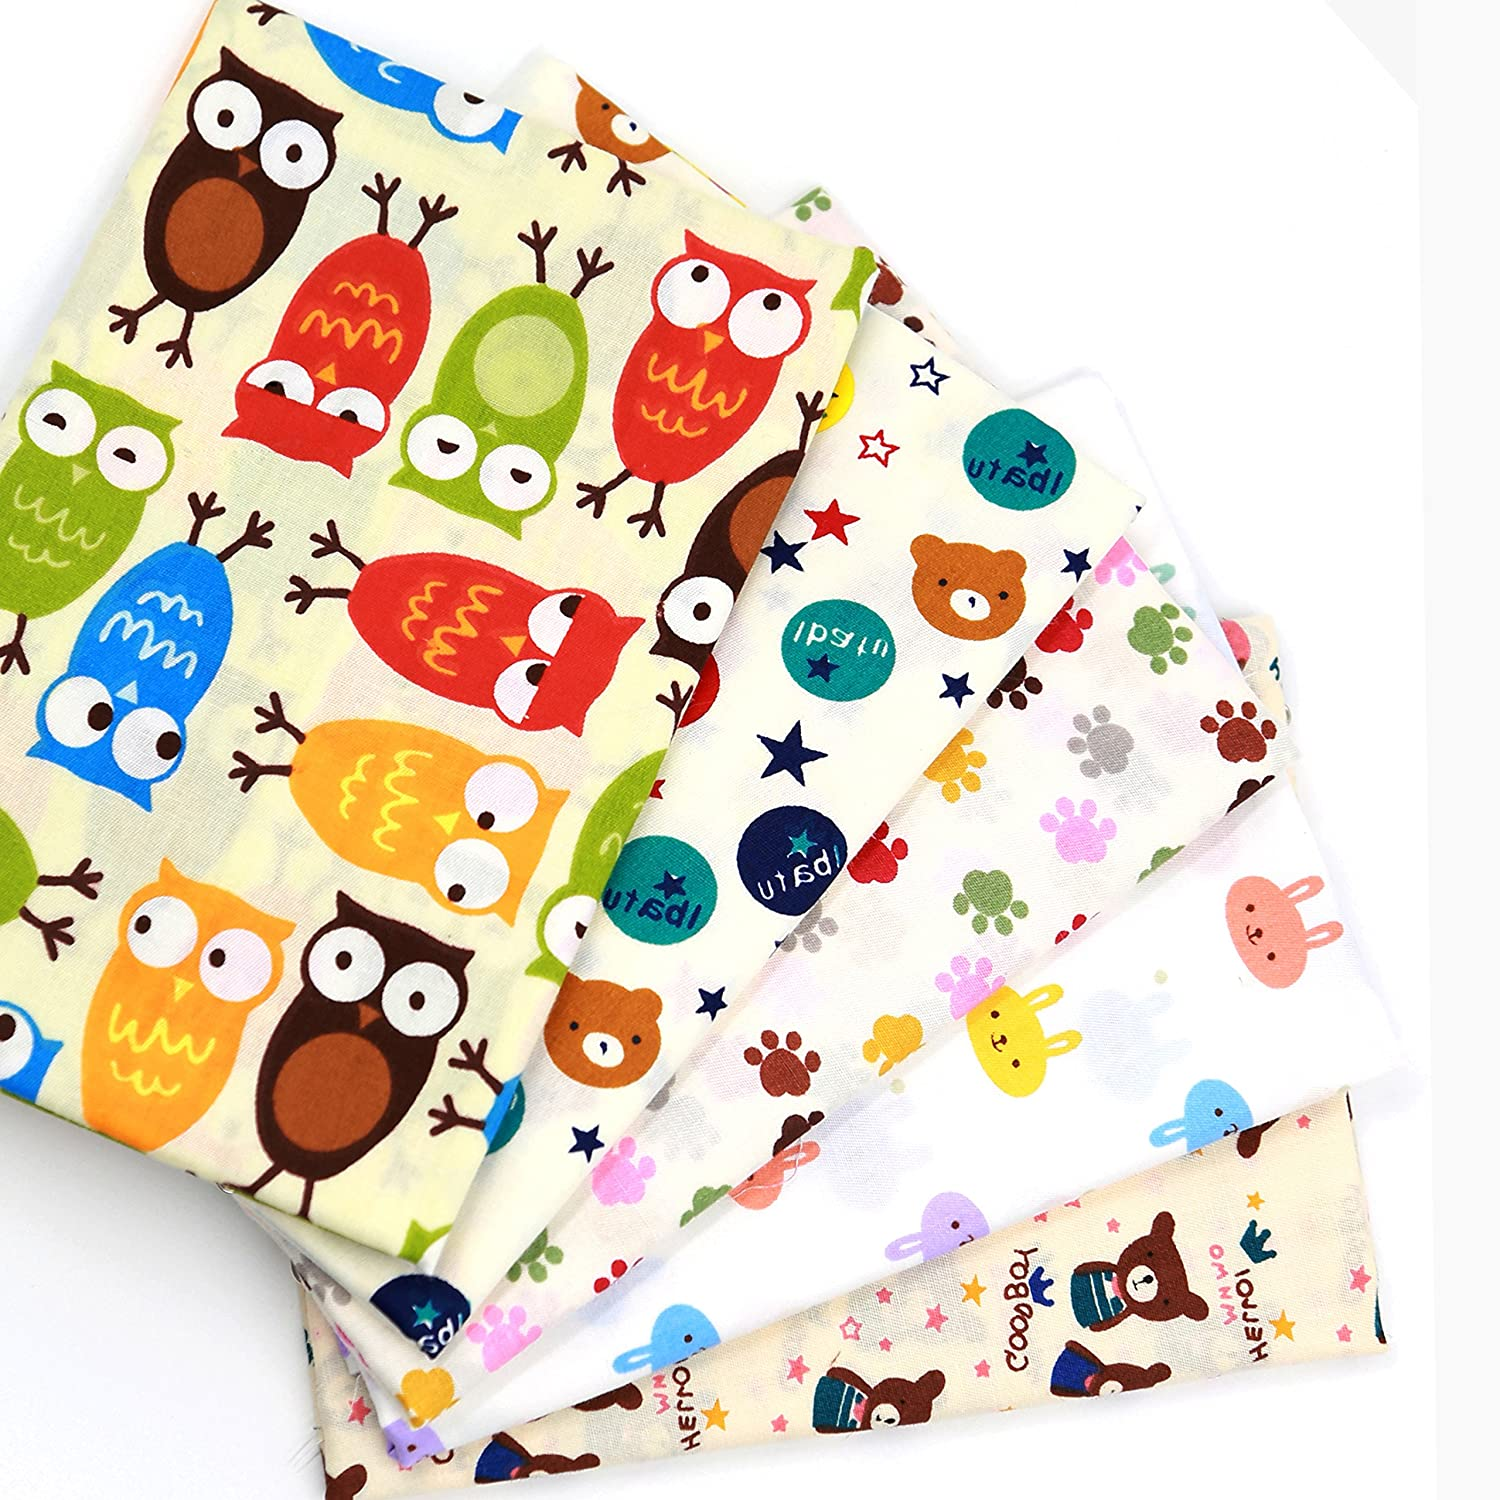 Amazon Com Cartoon Cotton Sewing Fabric For Diy Baby Quilting Bundle Material 5pcs Size 40cm X 50cm